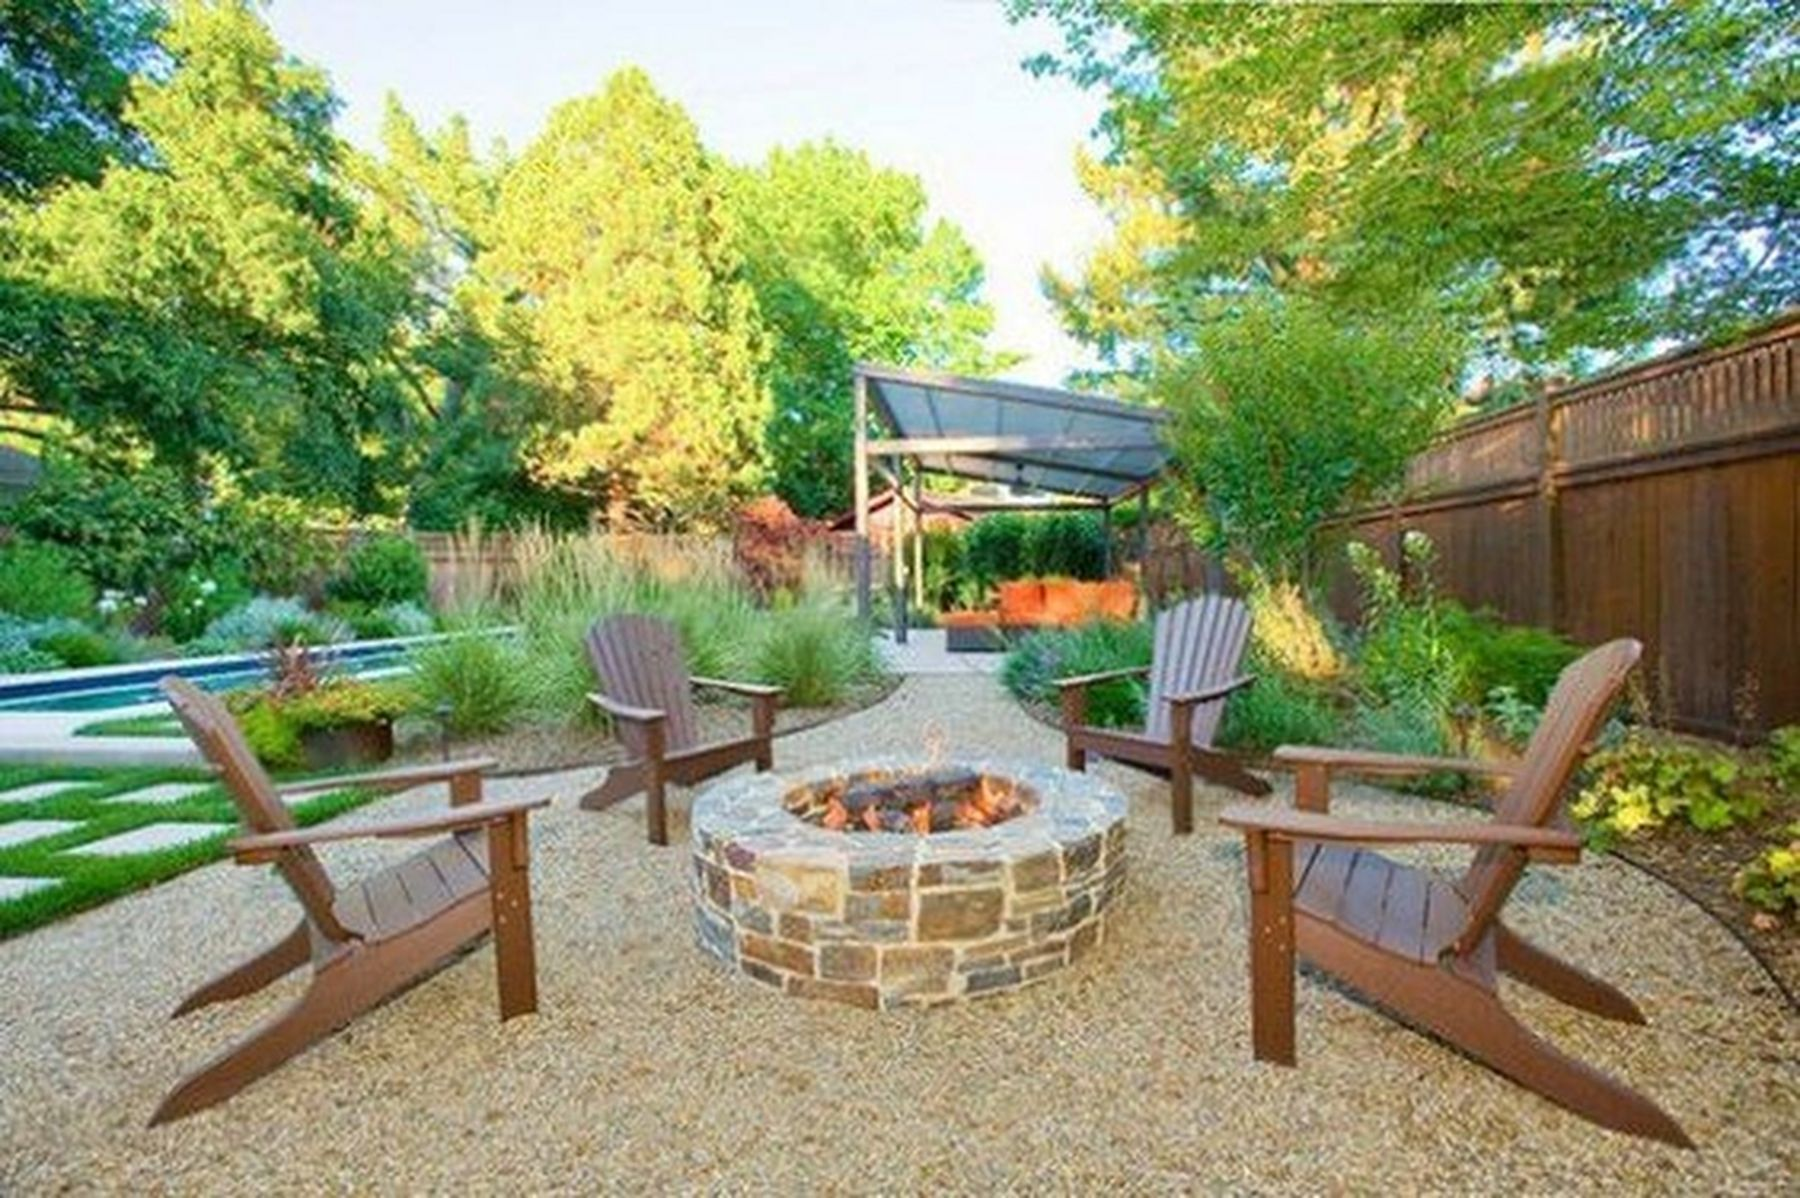 12 Best Stone Garden Design Ideas To Make Your Backyard ... on Stone Patio Ideas On A Budget id=88648